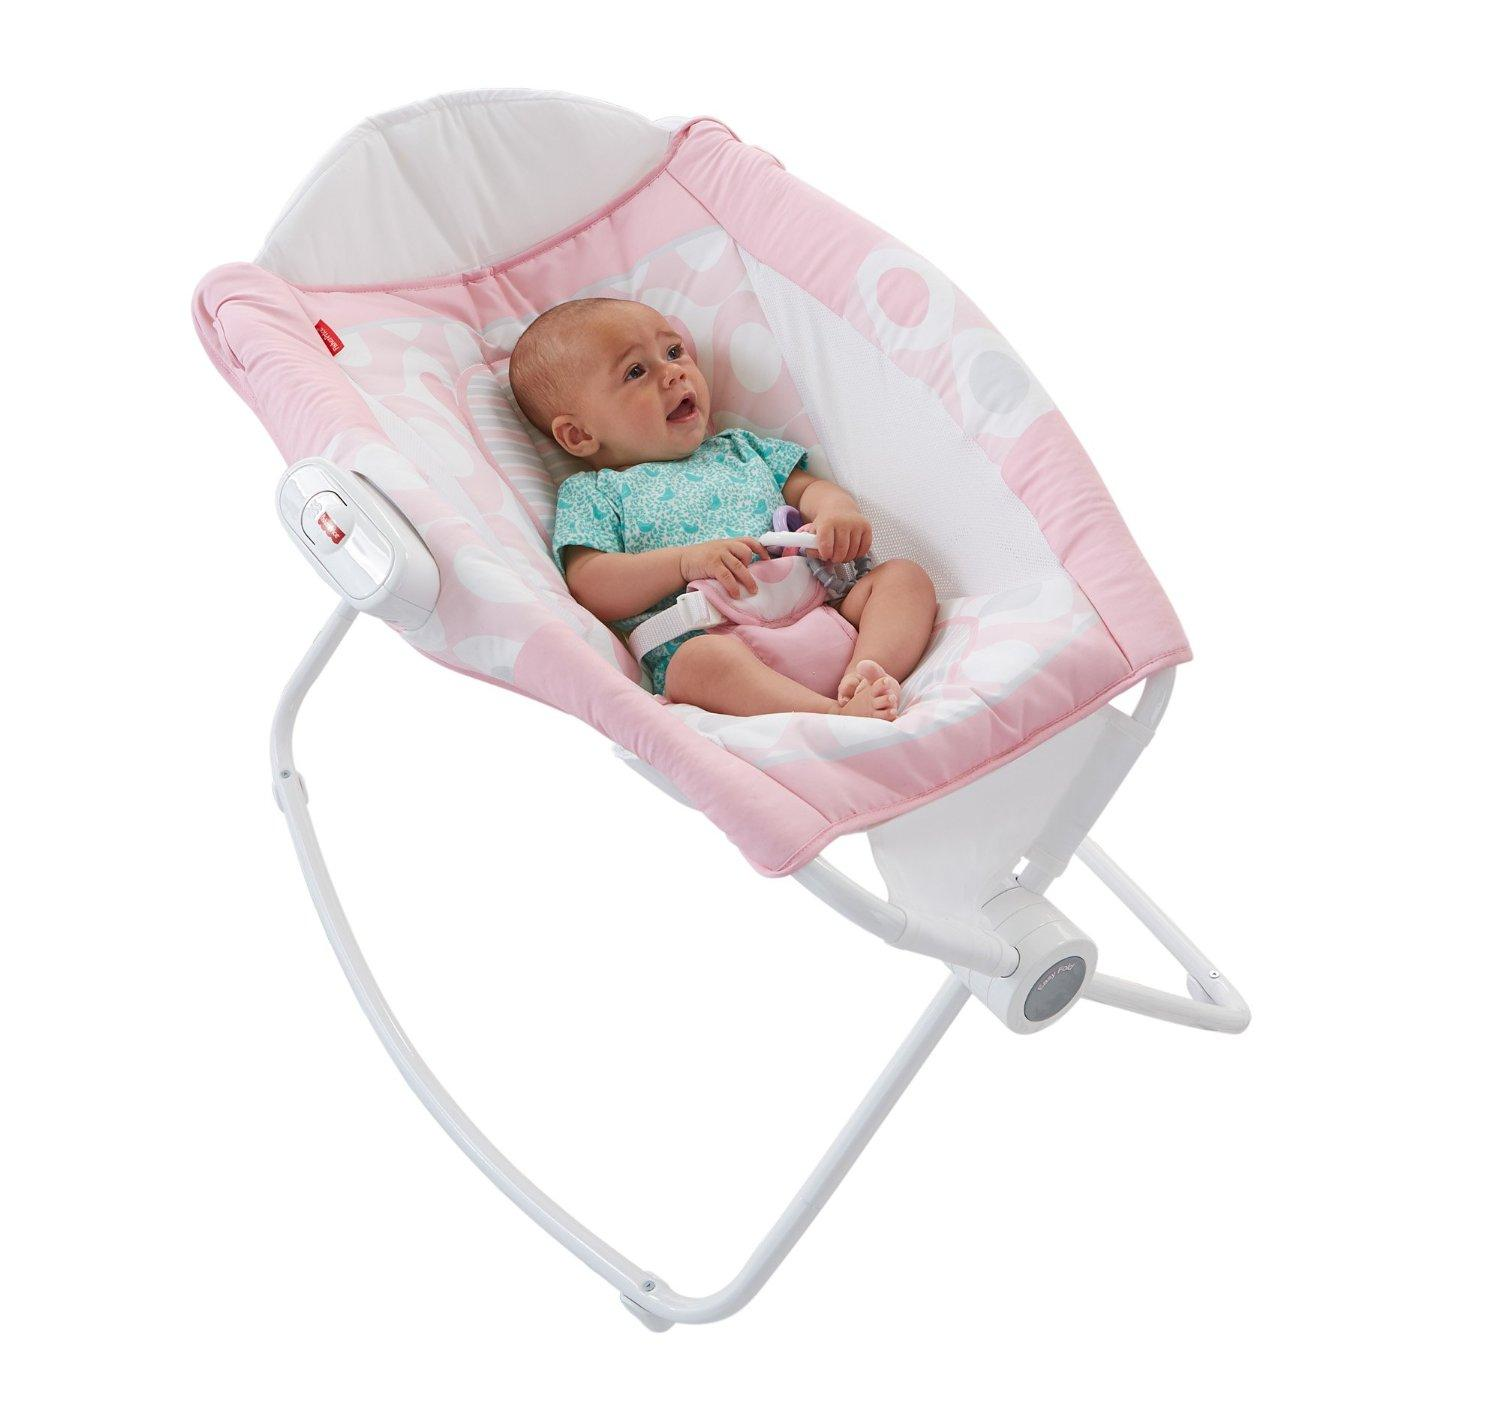 fisher price rock 39 n play sleeper pink ellipse pink white baby. Black Bedroom Furniture Sets. Home Design Ideas